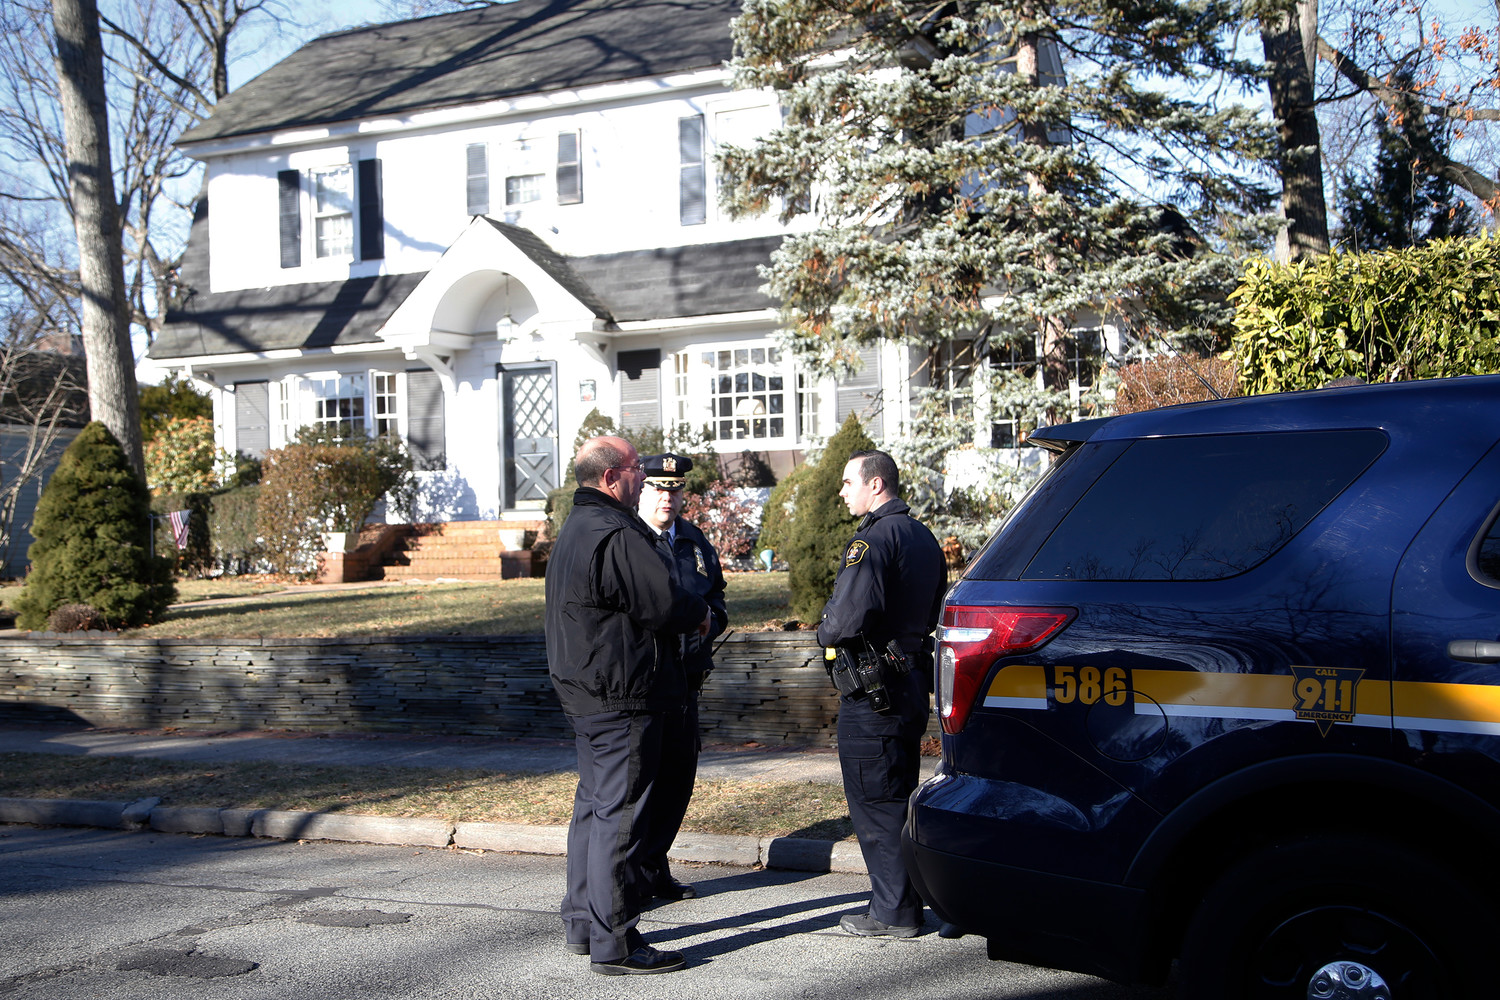 Malverne Police Department Chief John Aresta and officers in front of the house where Joseph Barbella was found early Tuesday morning.